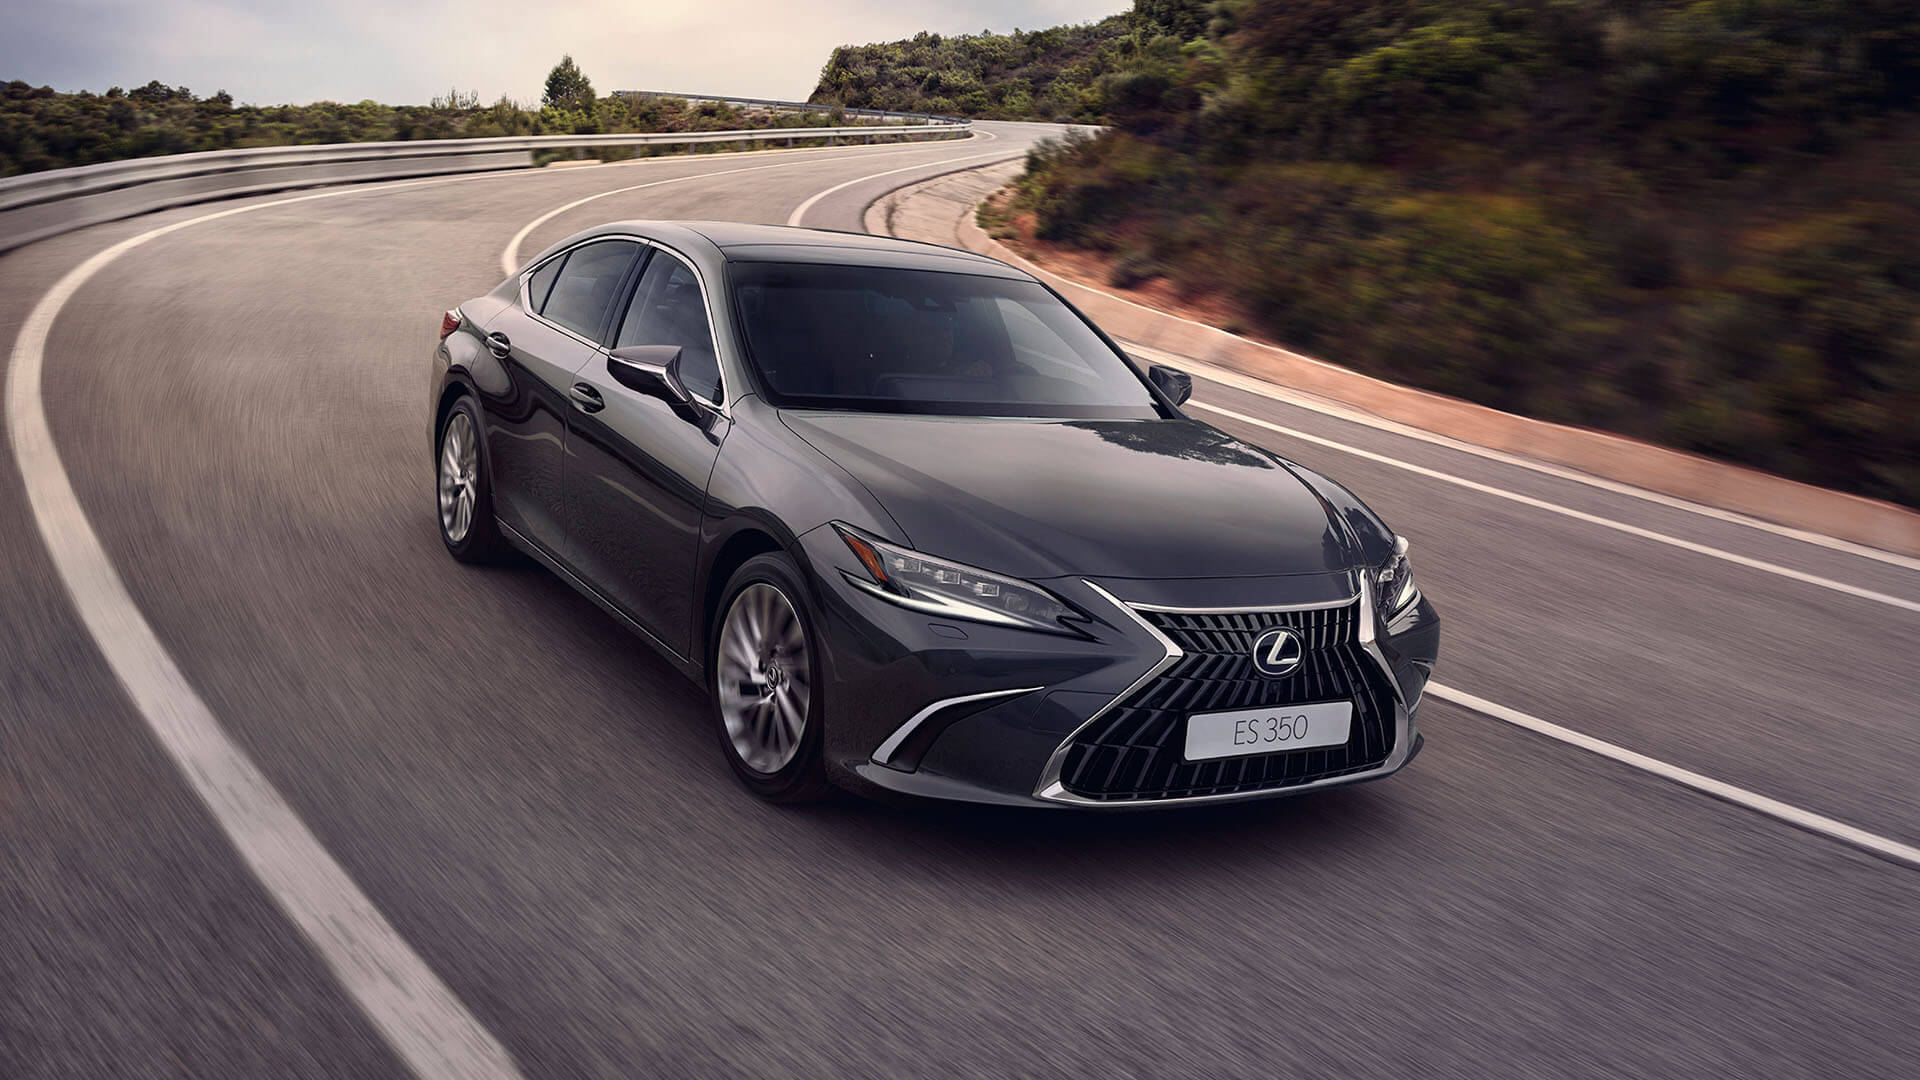 2022 RU lexus es experience exterior front new wheels and paintwork